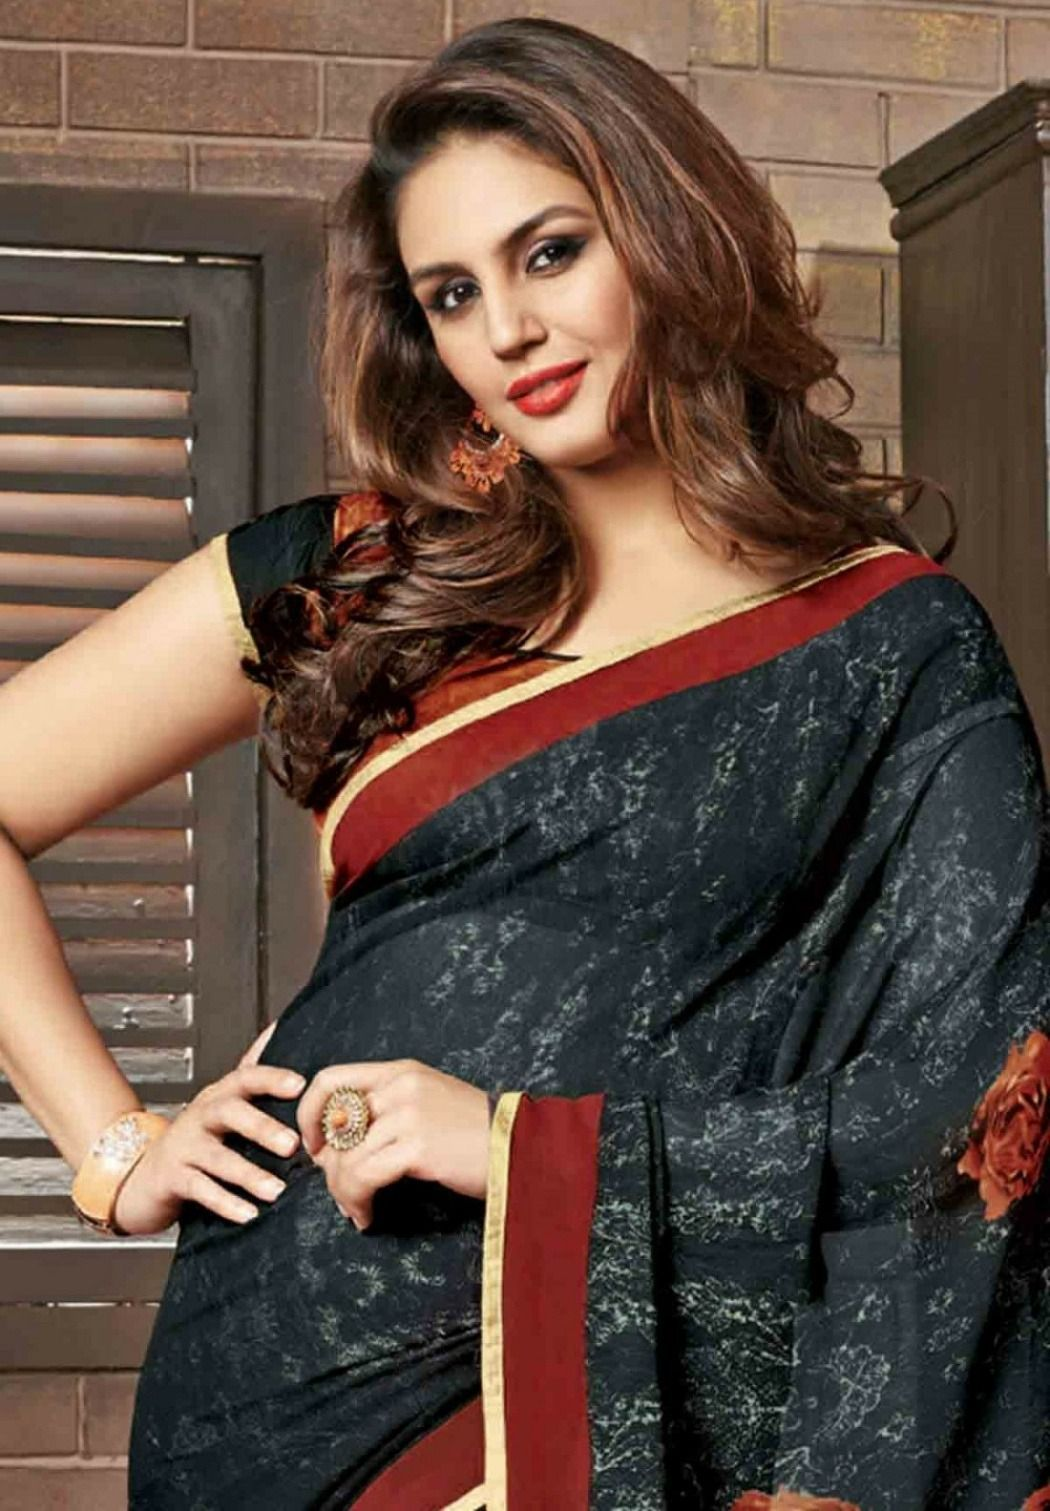 huma qureshi hot pic in saree bollywood hot actress